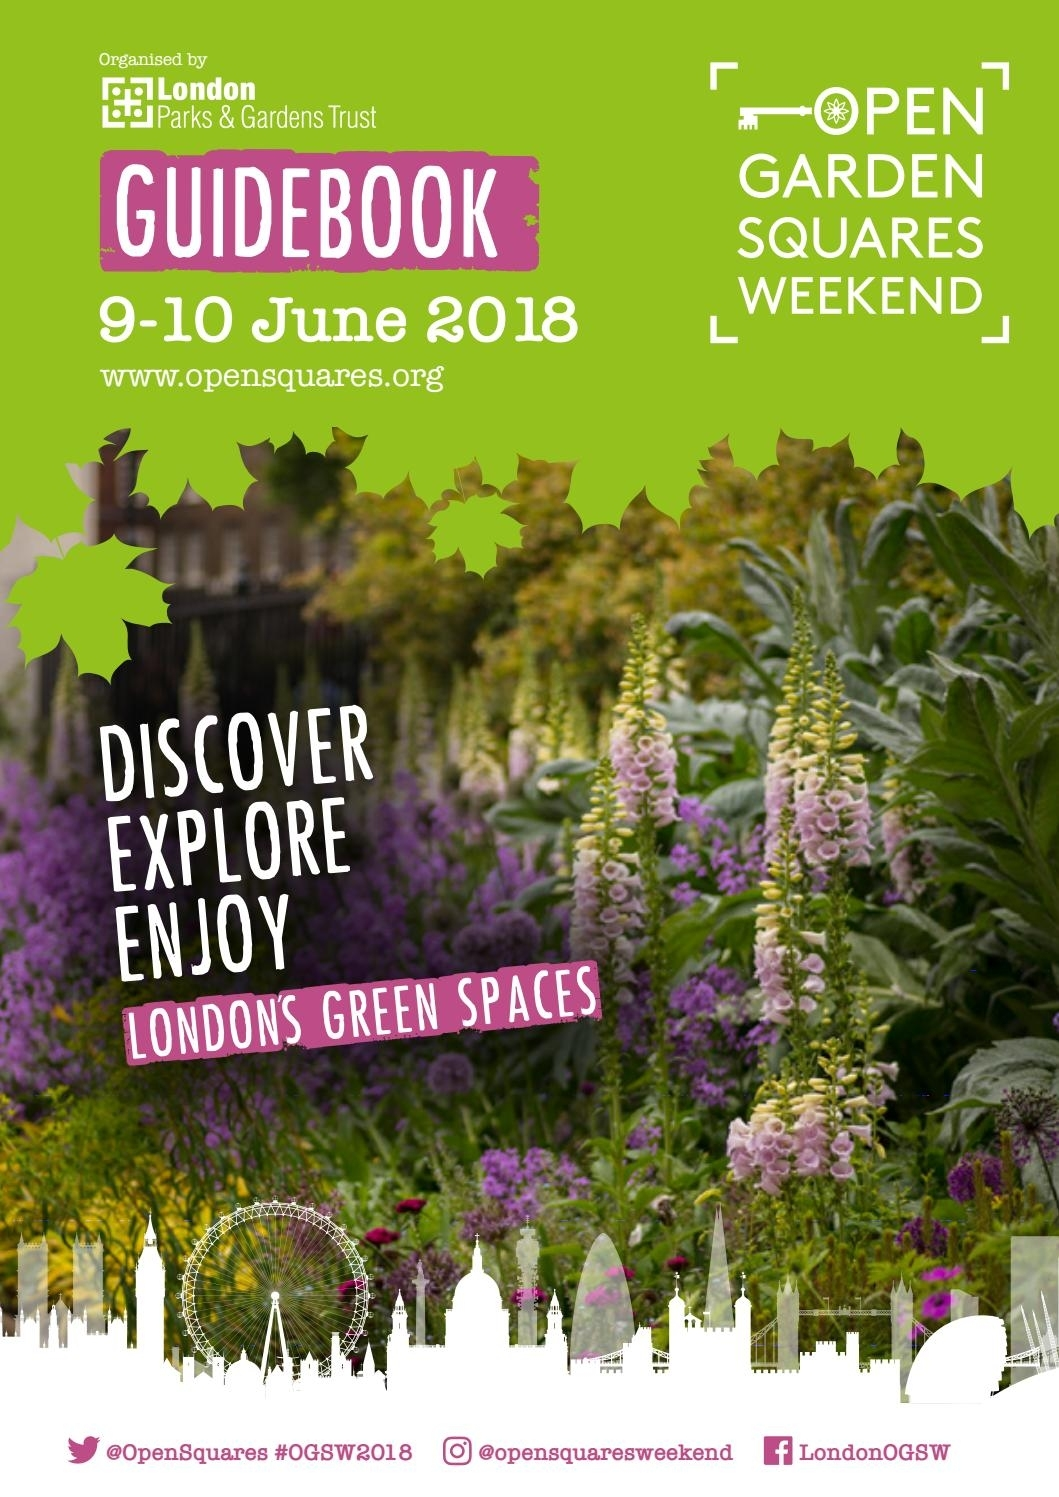 Open Garden Squares Weekend Guidebook 2018 By London Parks And for How To Play Garden Flower Bloom Level 267